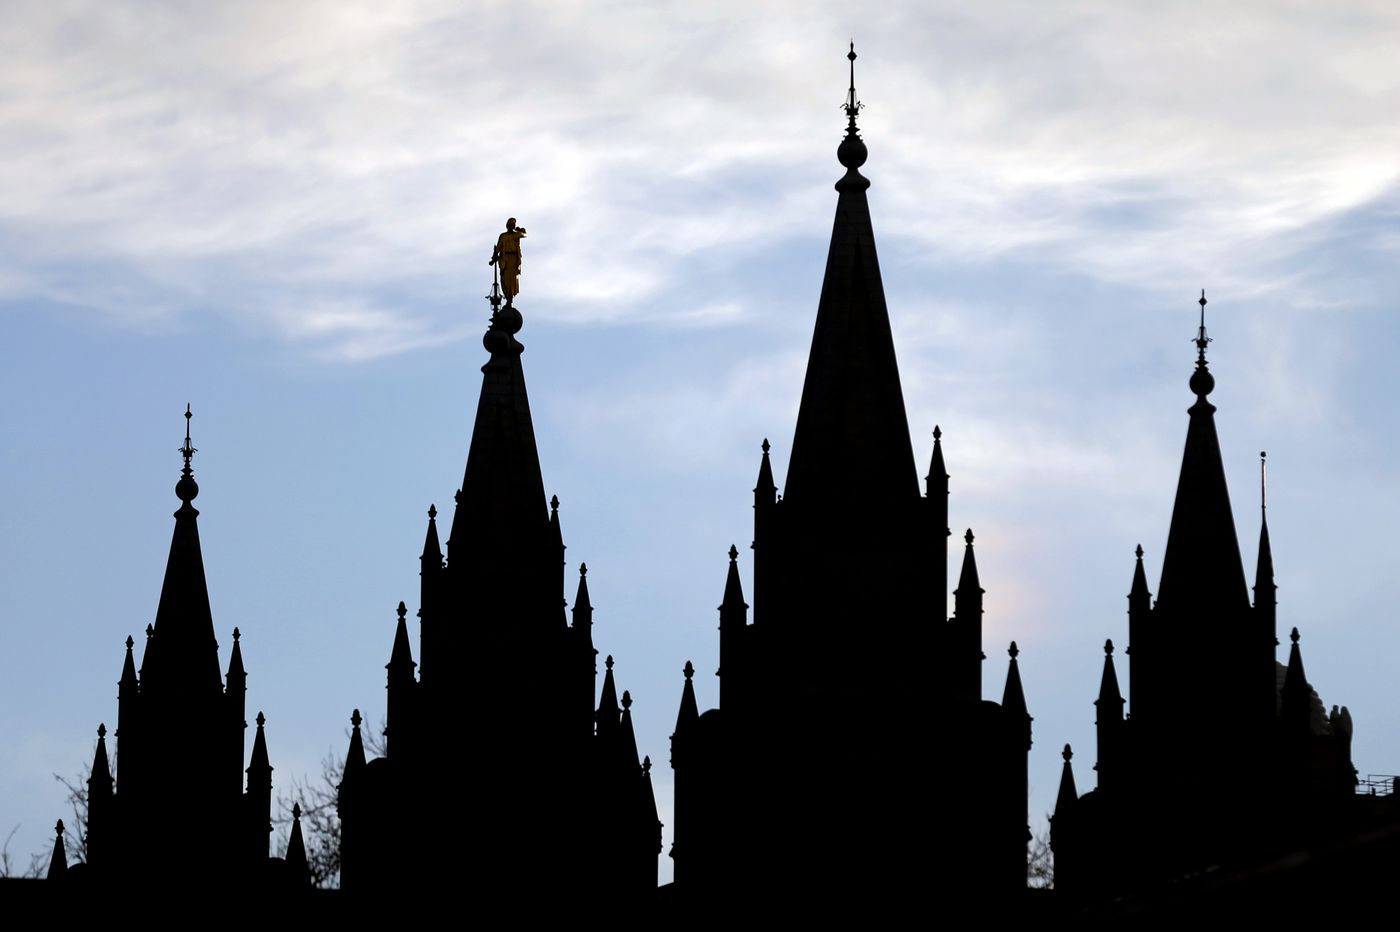 Mormon missionaries detained weeks in Russia arrive in US